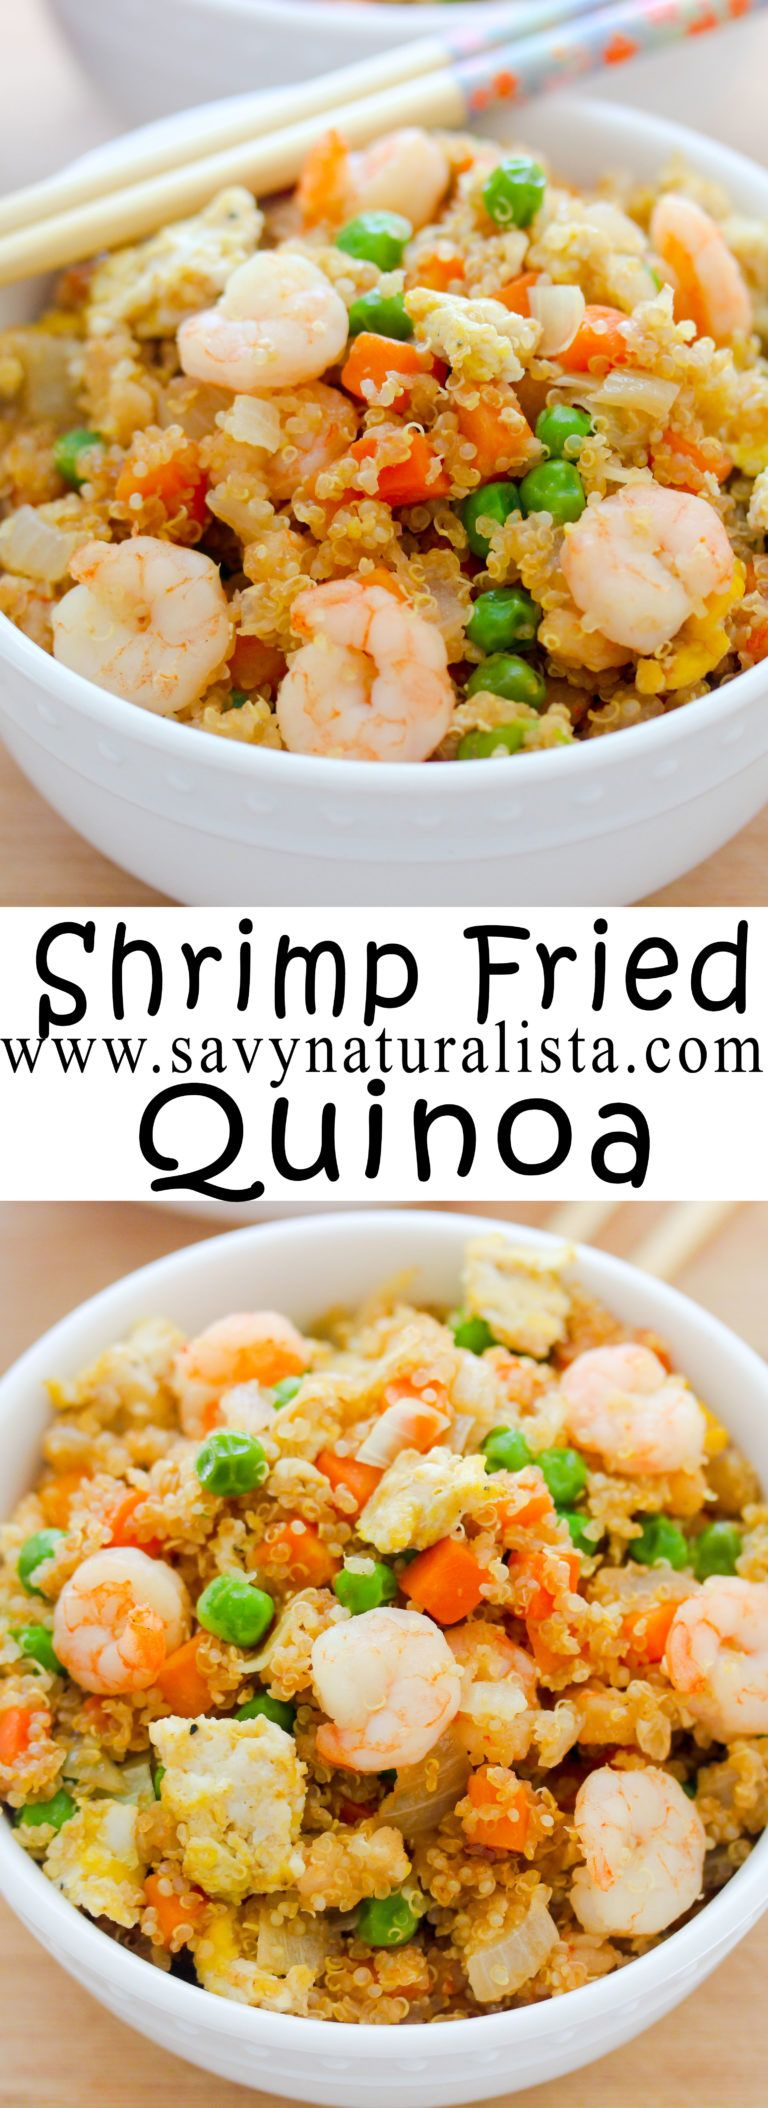 Photo of Shrimp Fried Quinoa – Savvy Naturalista